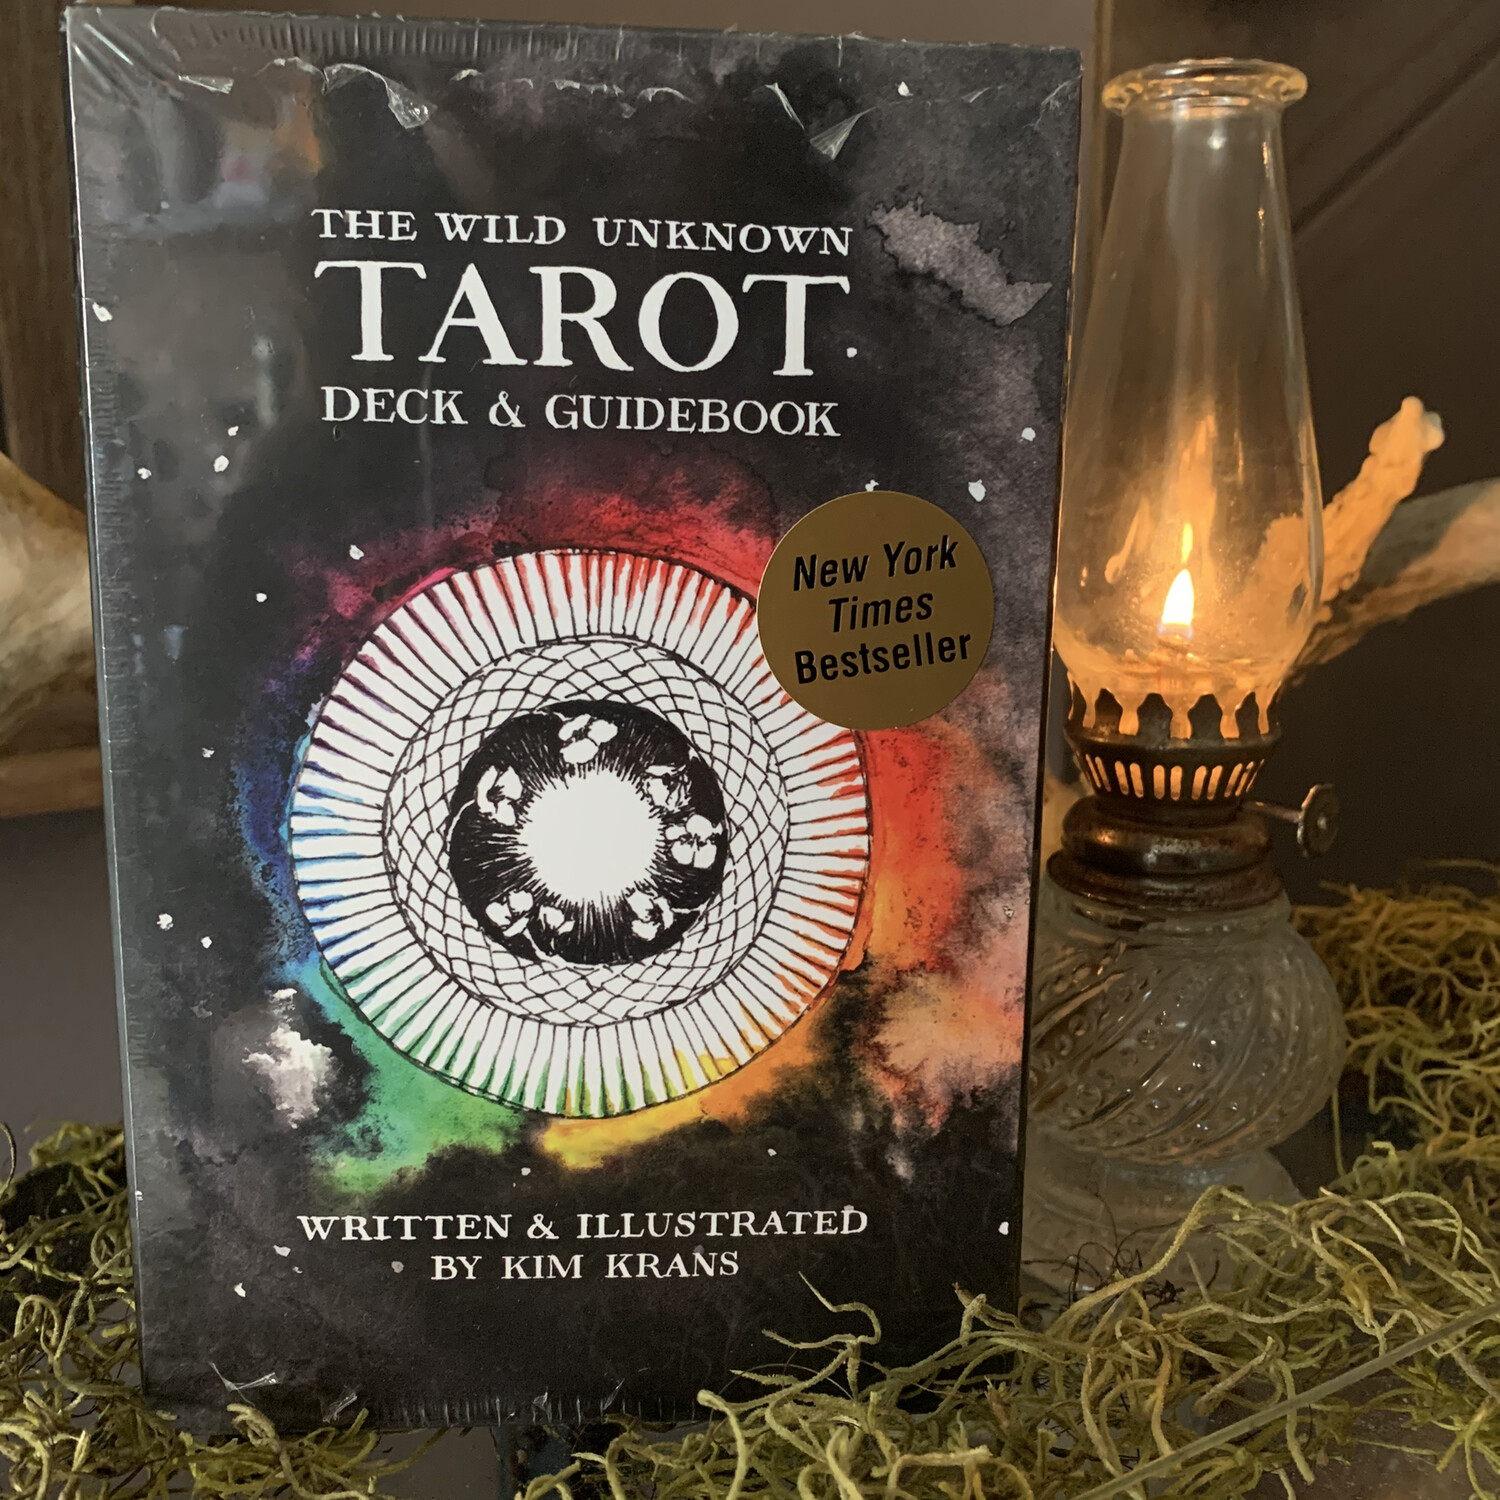 The Wild Unknown Tarot Deck & Guidebook